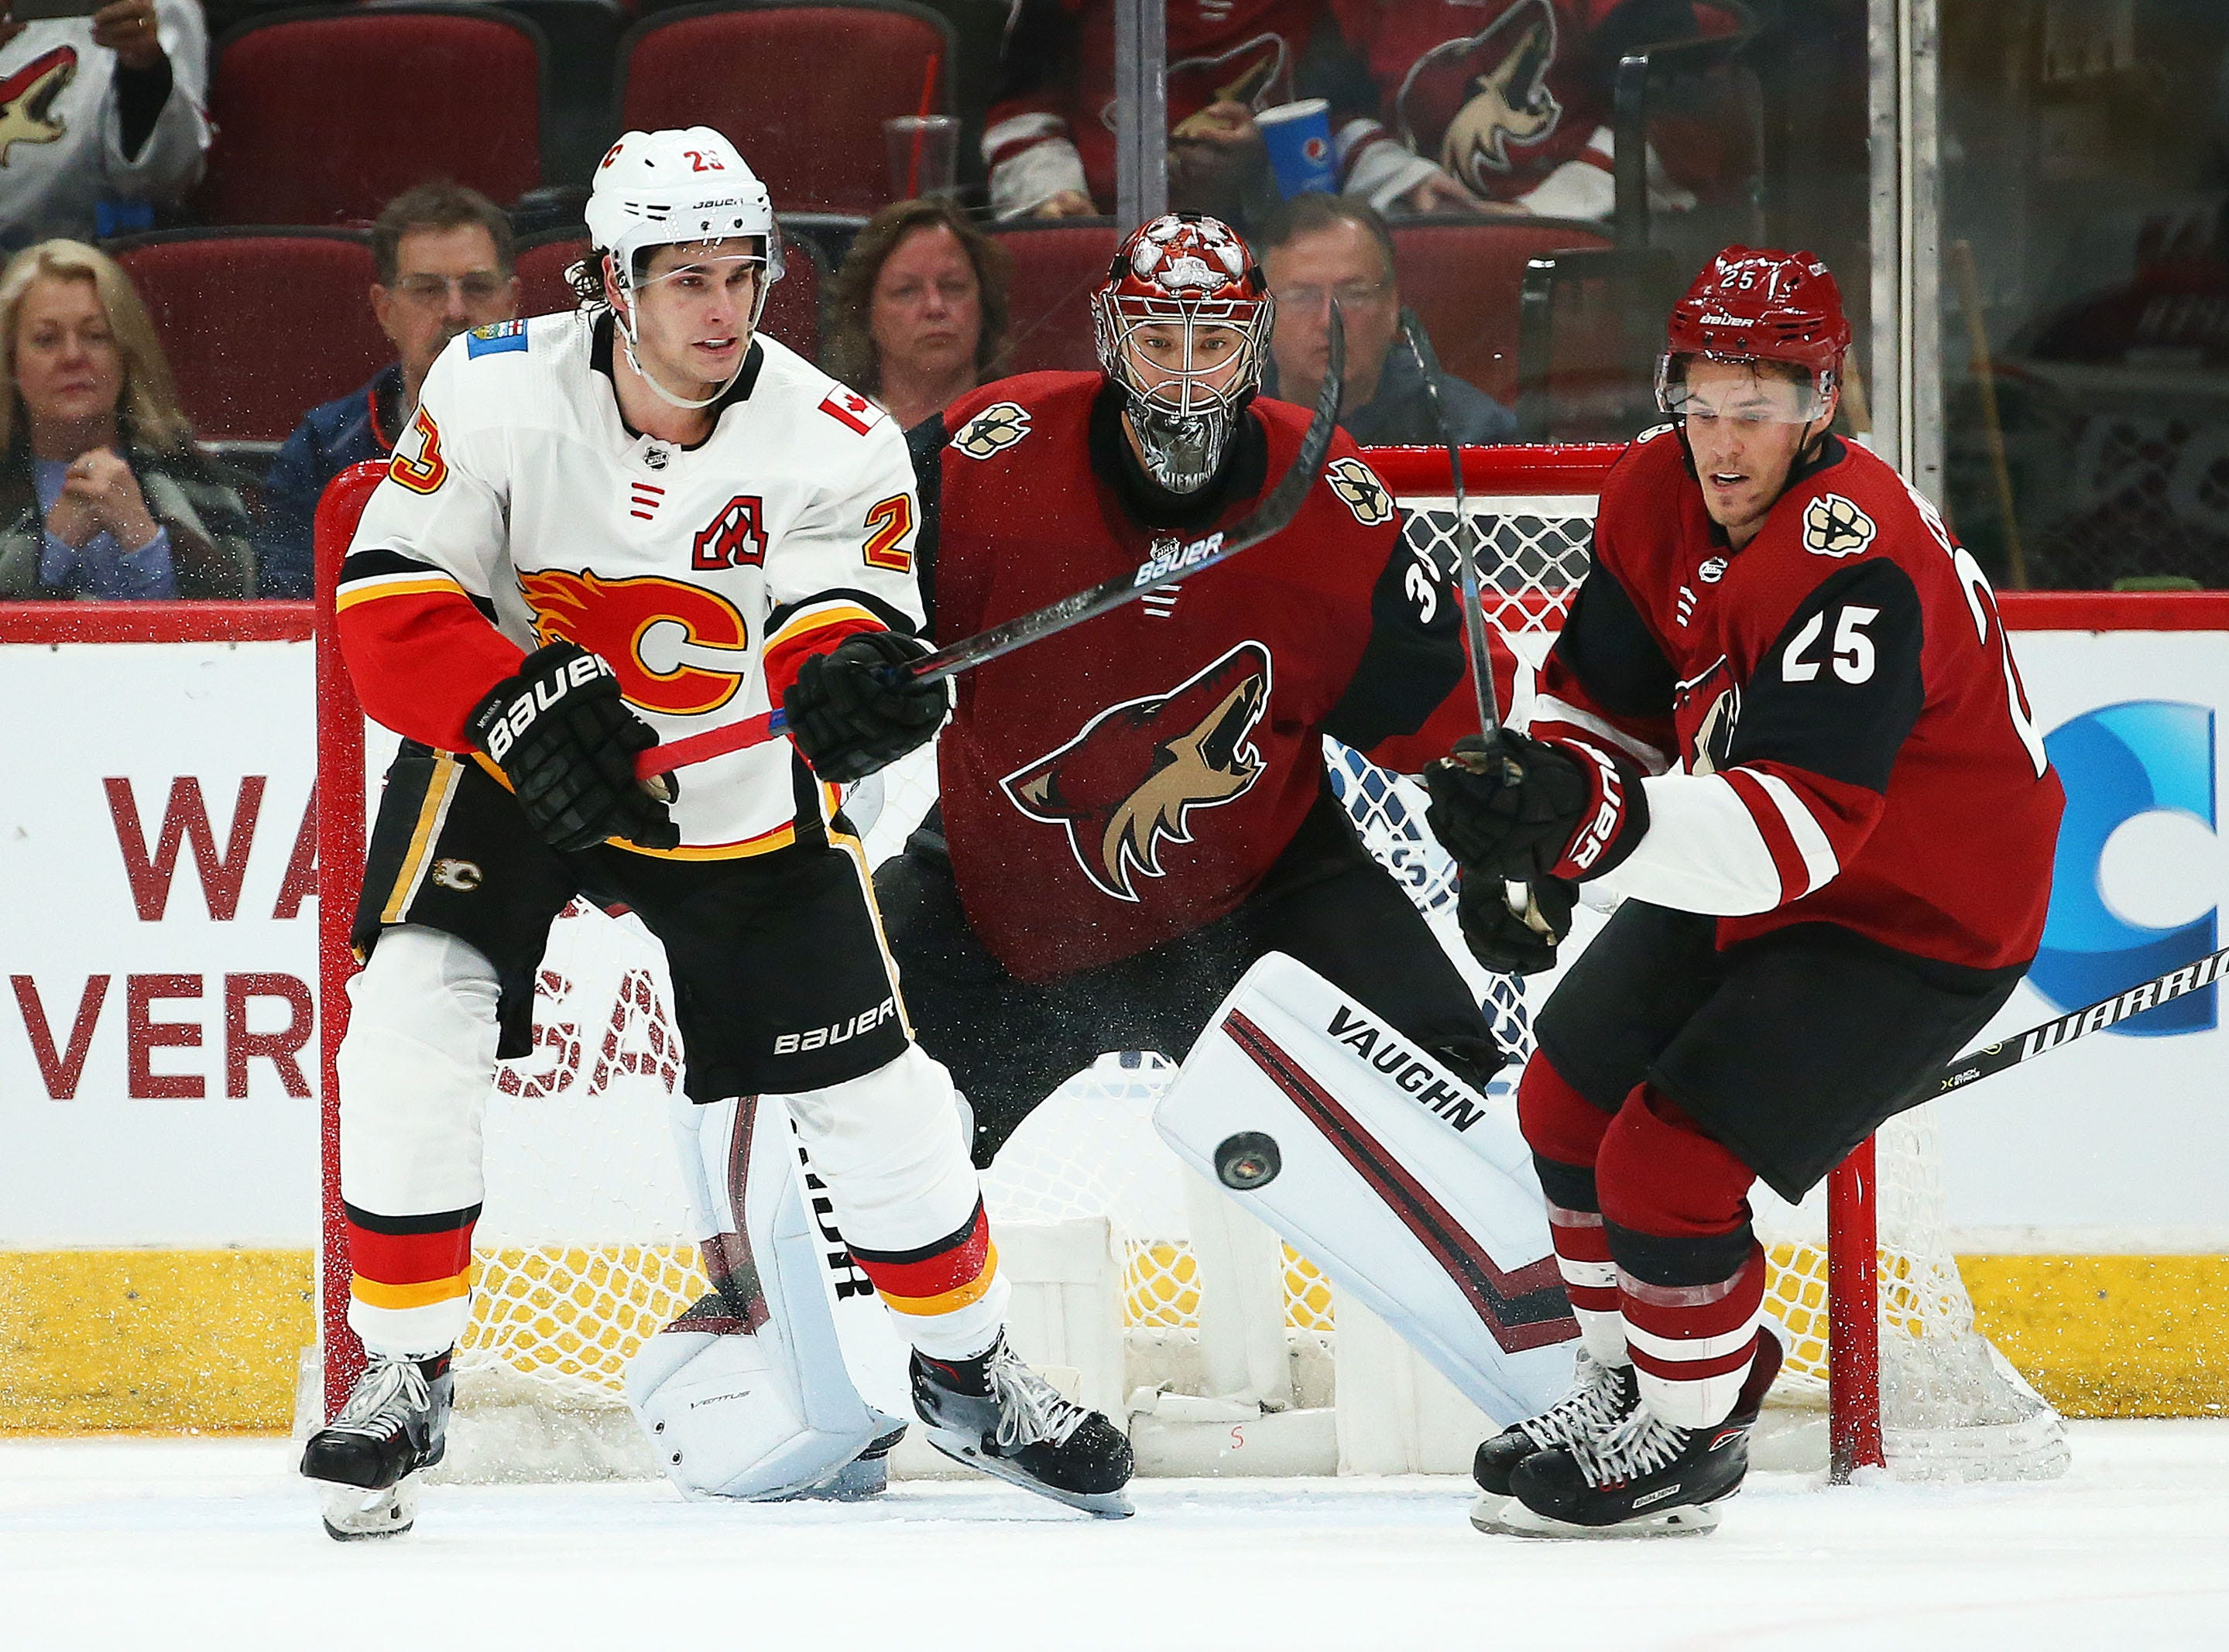 Calgary Flames center Sean Monahan (23) and Arizona Coyotes goaltender Darcy Kuemper (35) and center Nick Cousins (25) watch the puck in the second period on Mar. 7, 2019, at Gila River Arena in Glendale, Ariz.